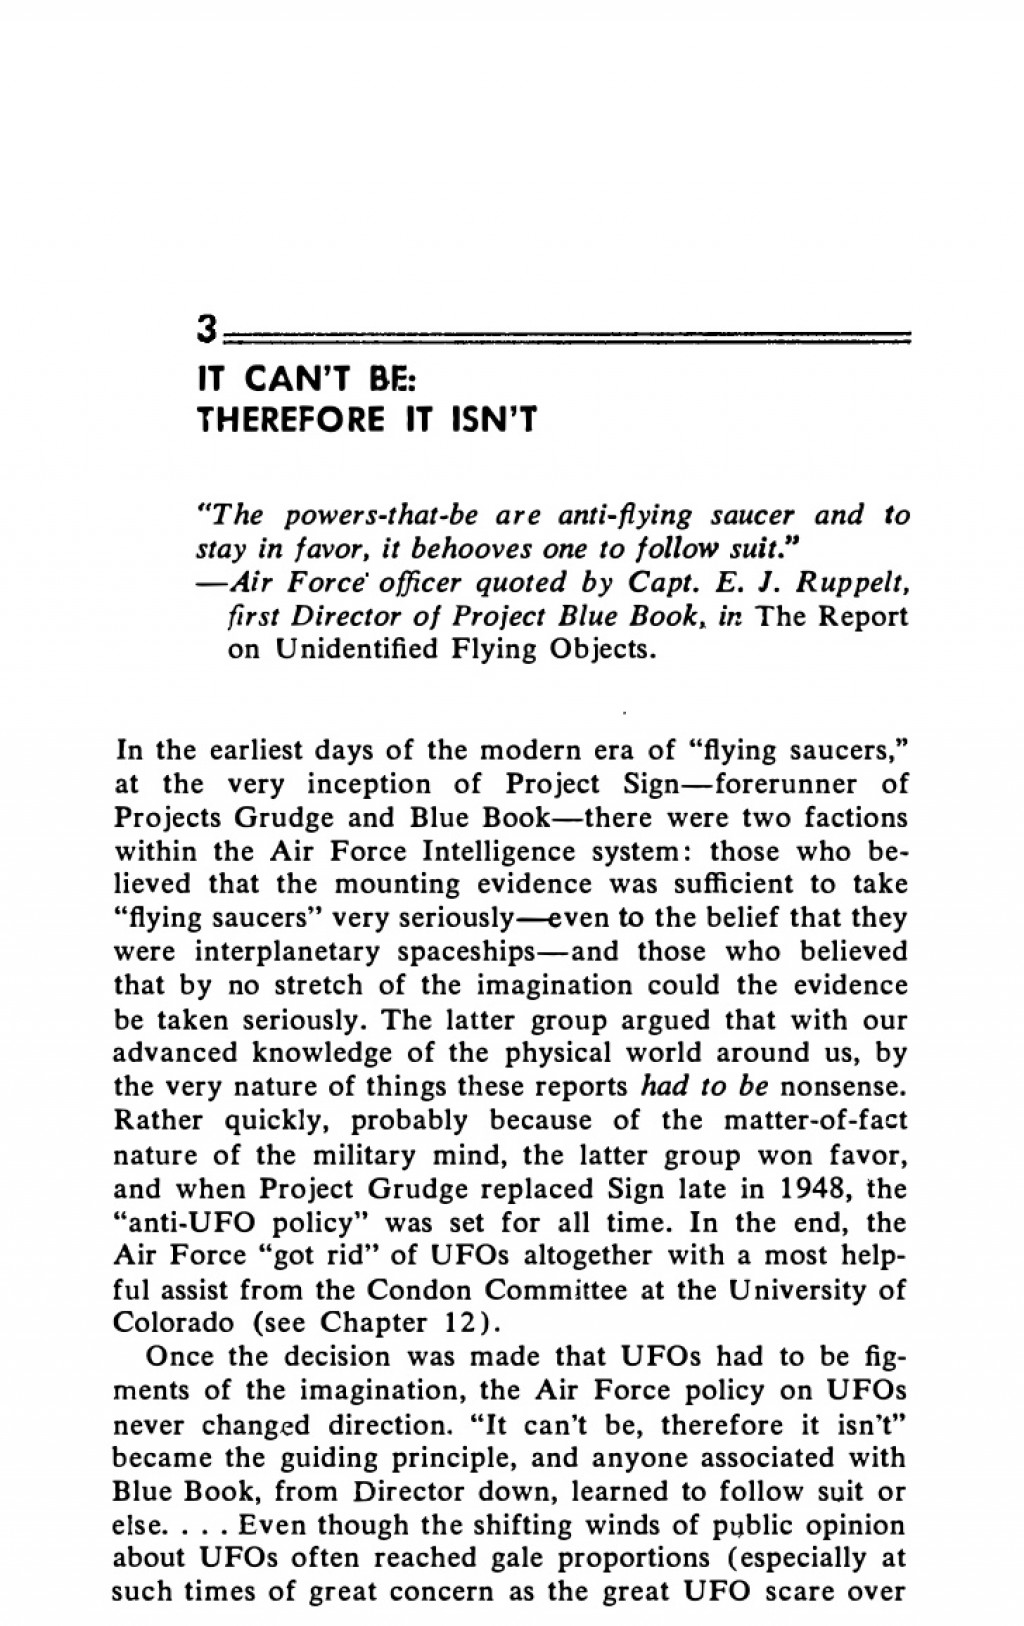 003 Essay Example J Allen Hynek The Ufo Report Sharing And Formidable Caring Is For Grade 3 Class 2 Large